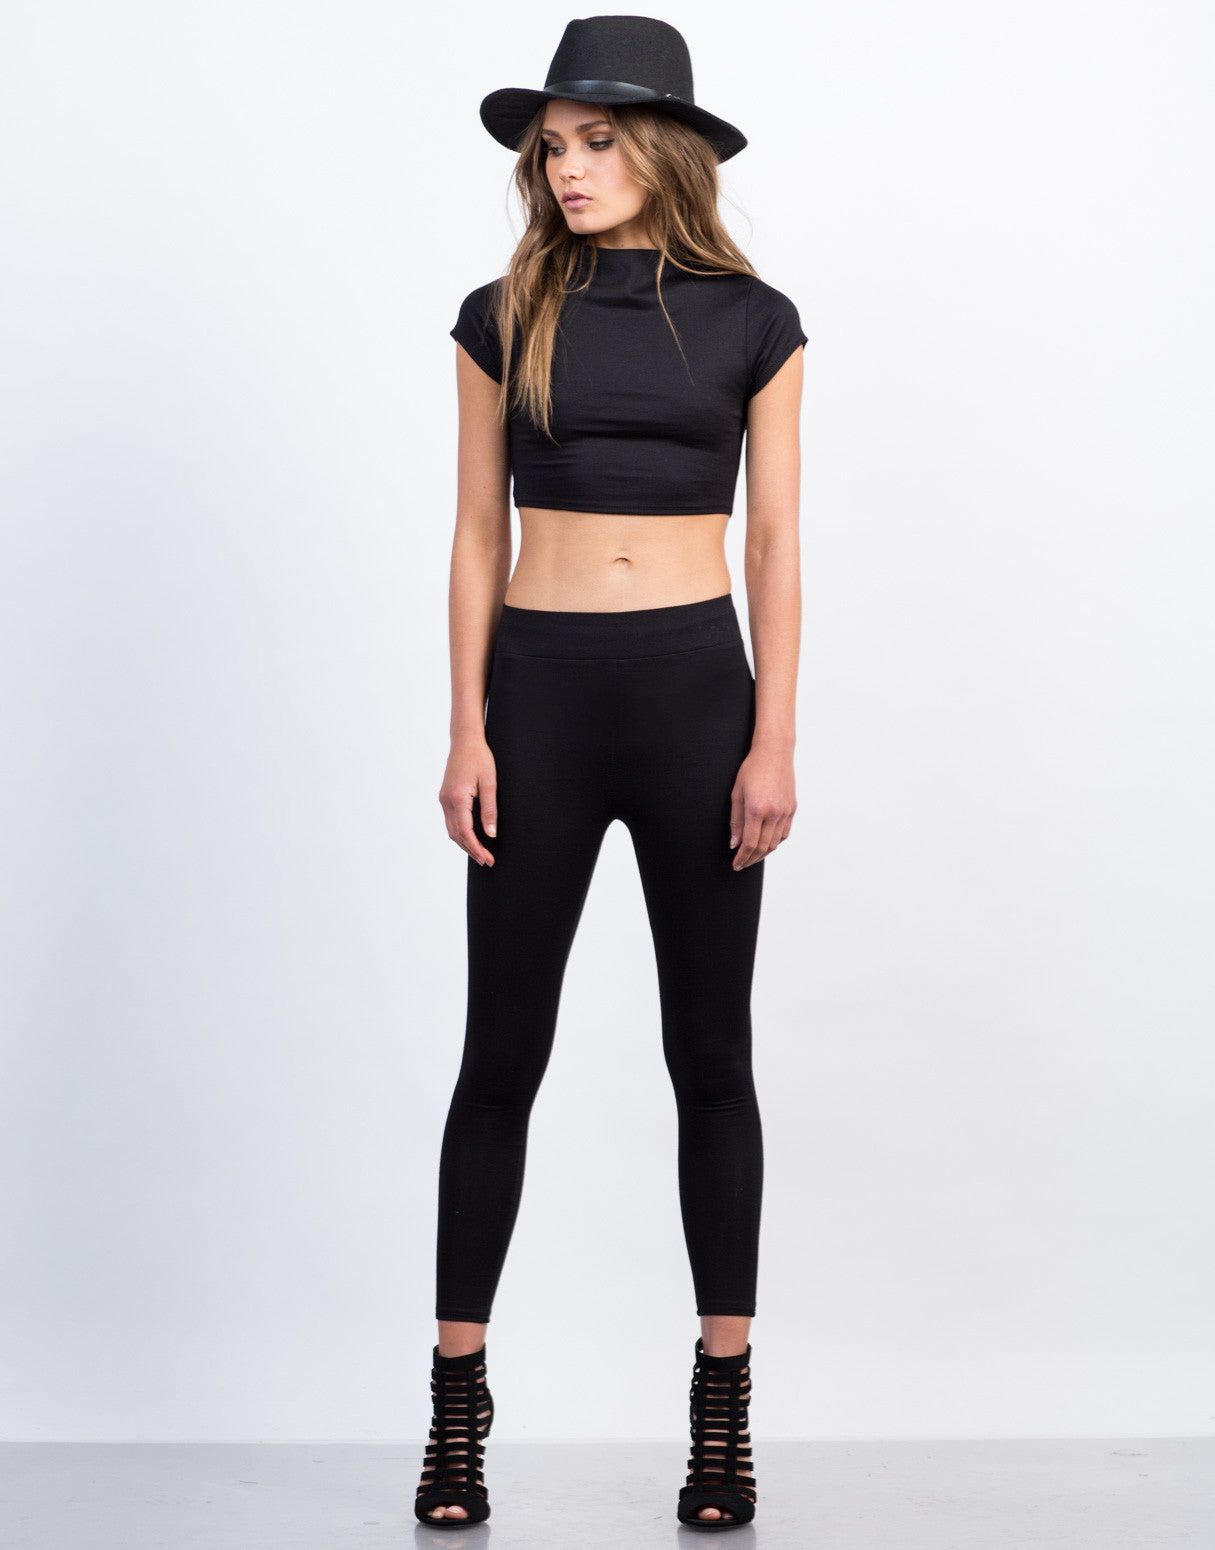 Front View of Simple High Waisted Legging Pants